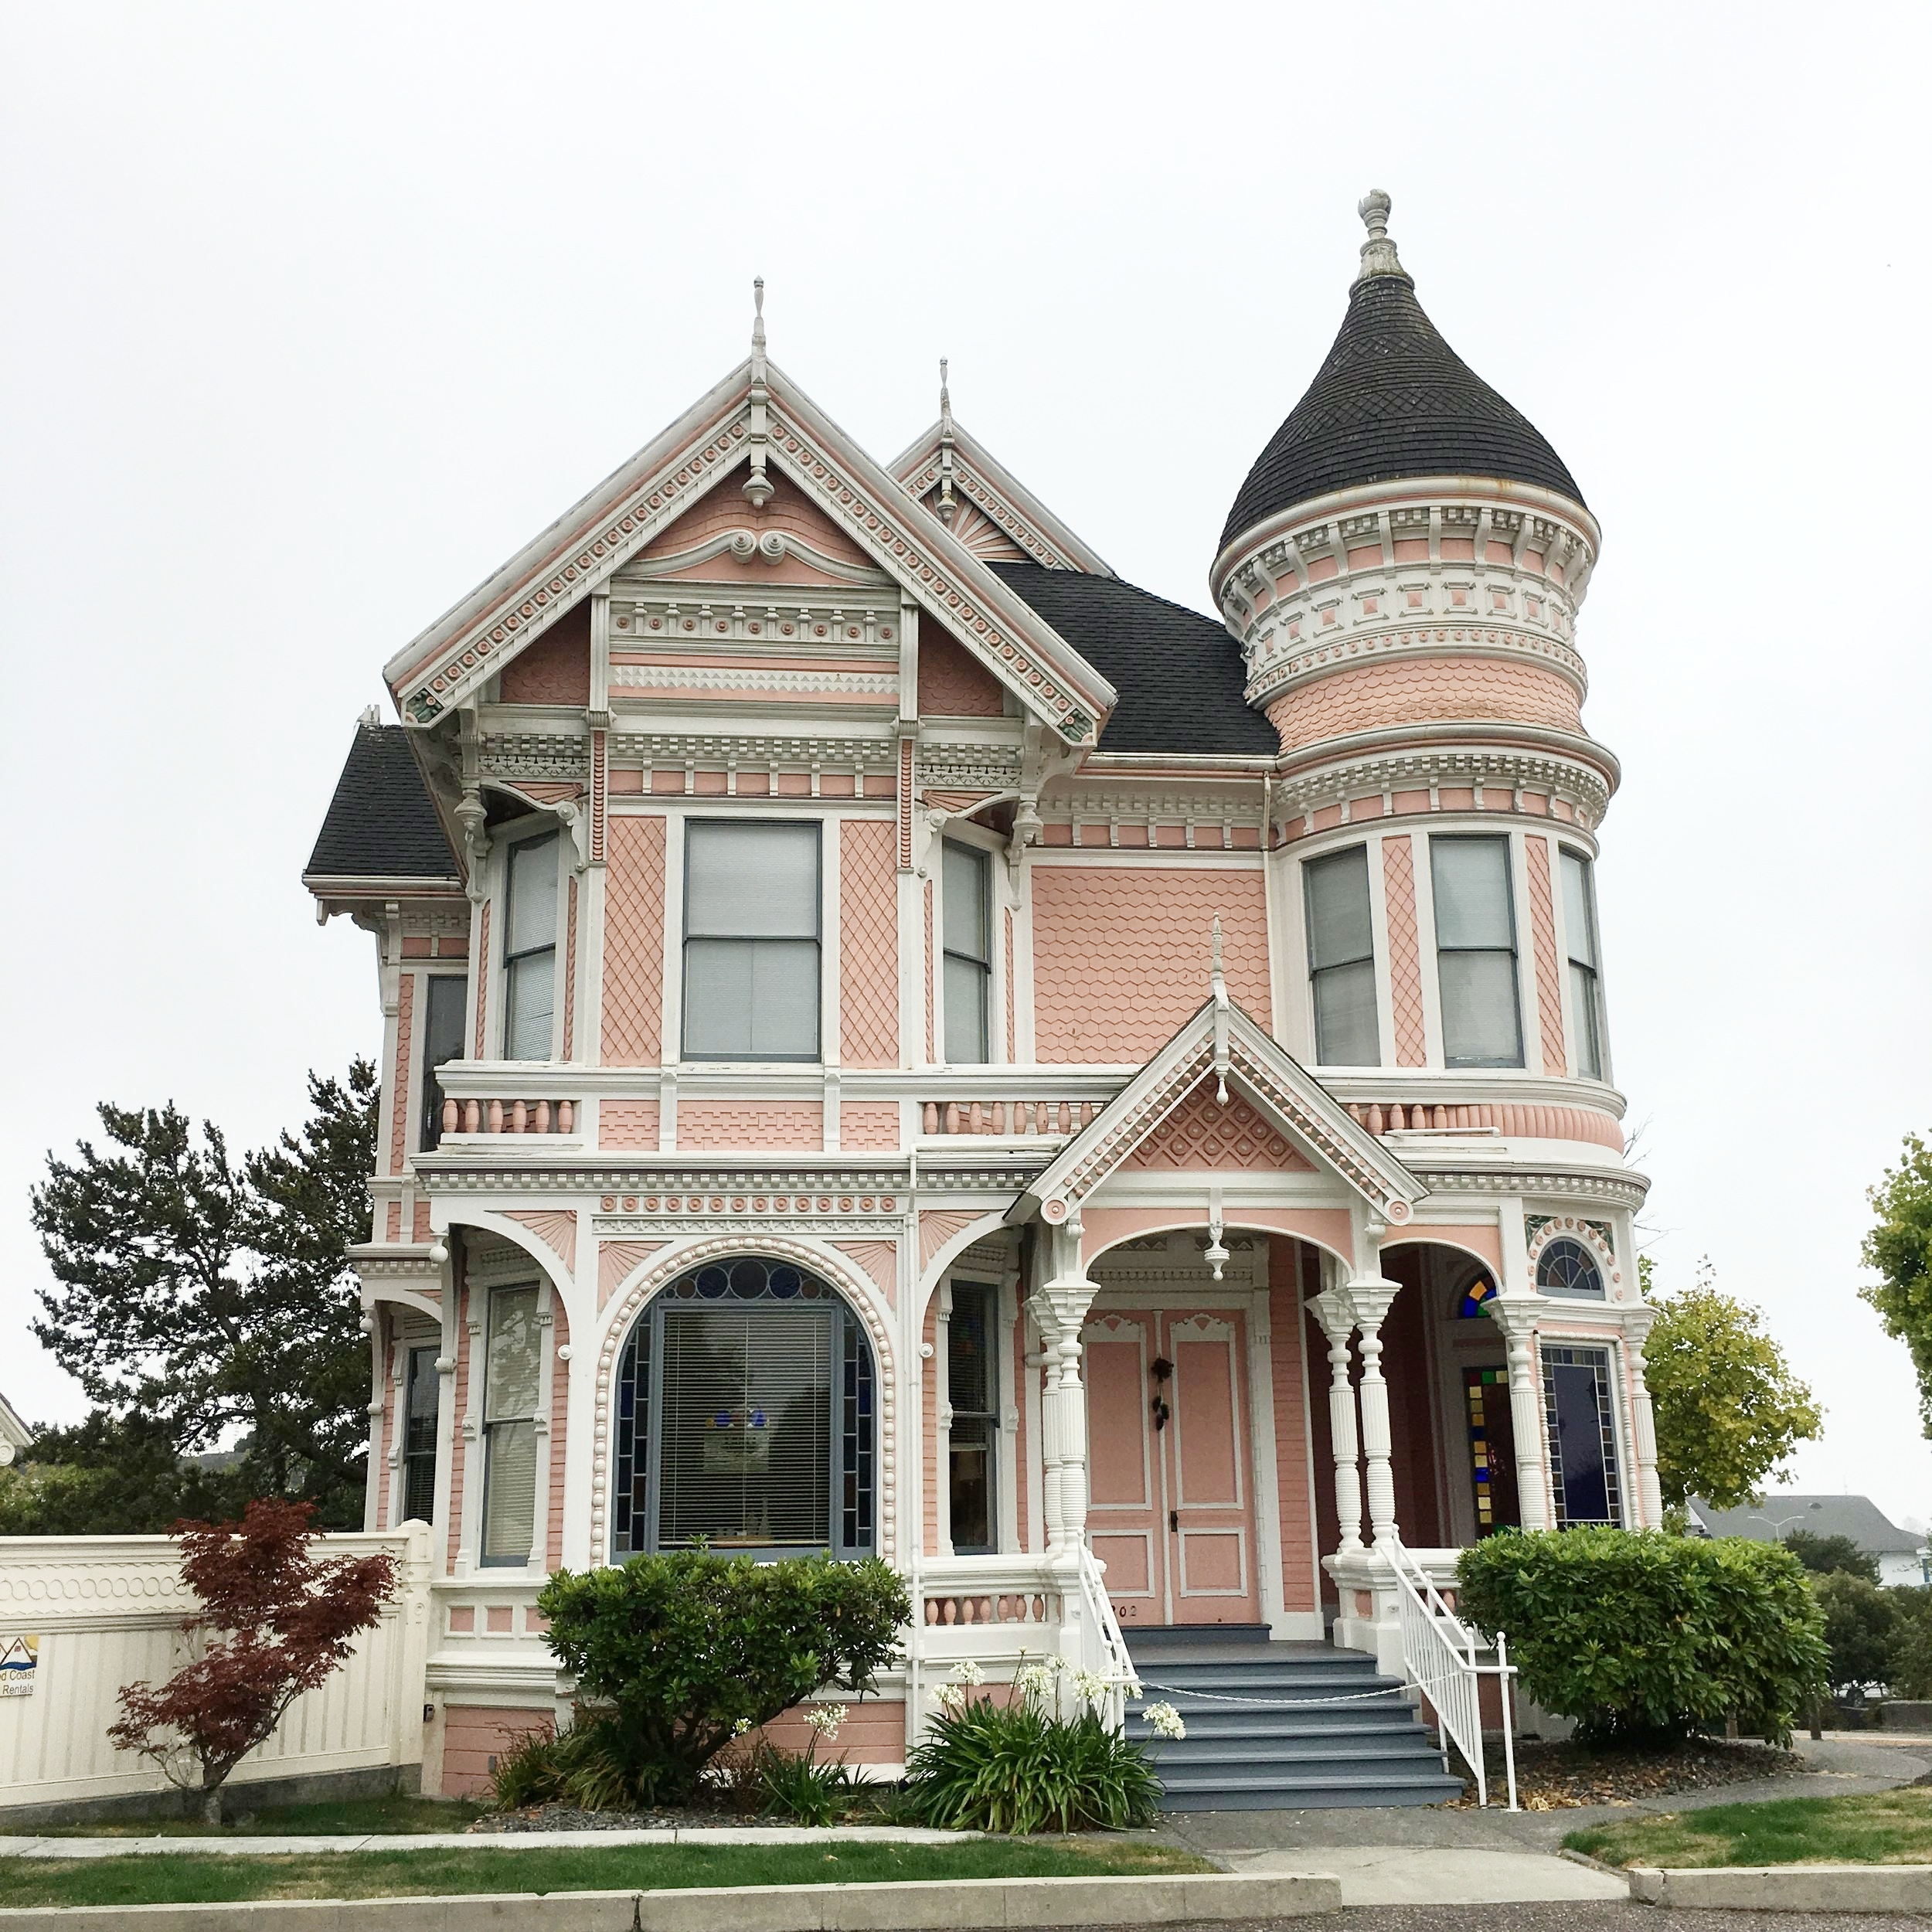 The Pink Lady in Eureka, CA - wear she blossoms